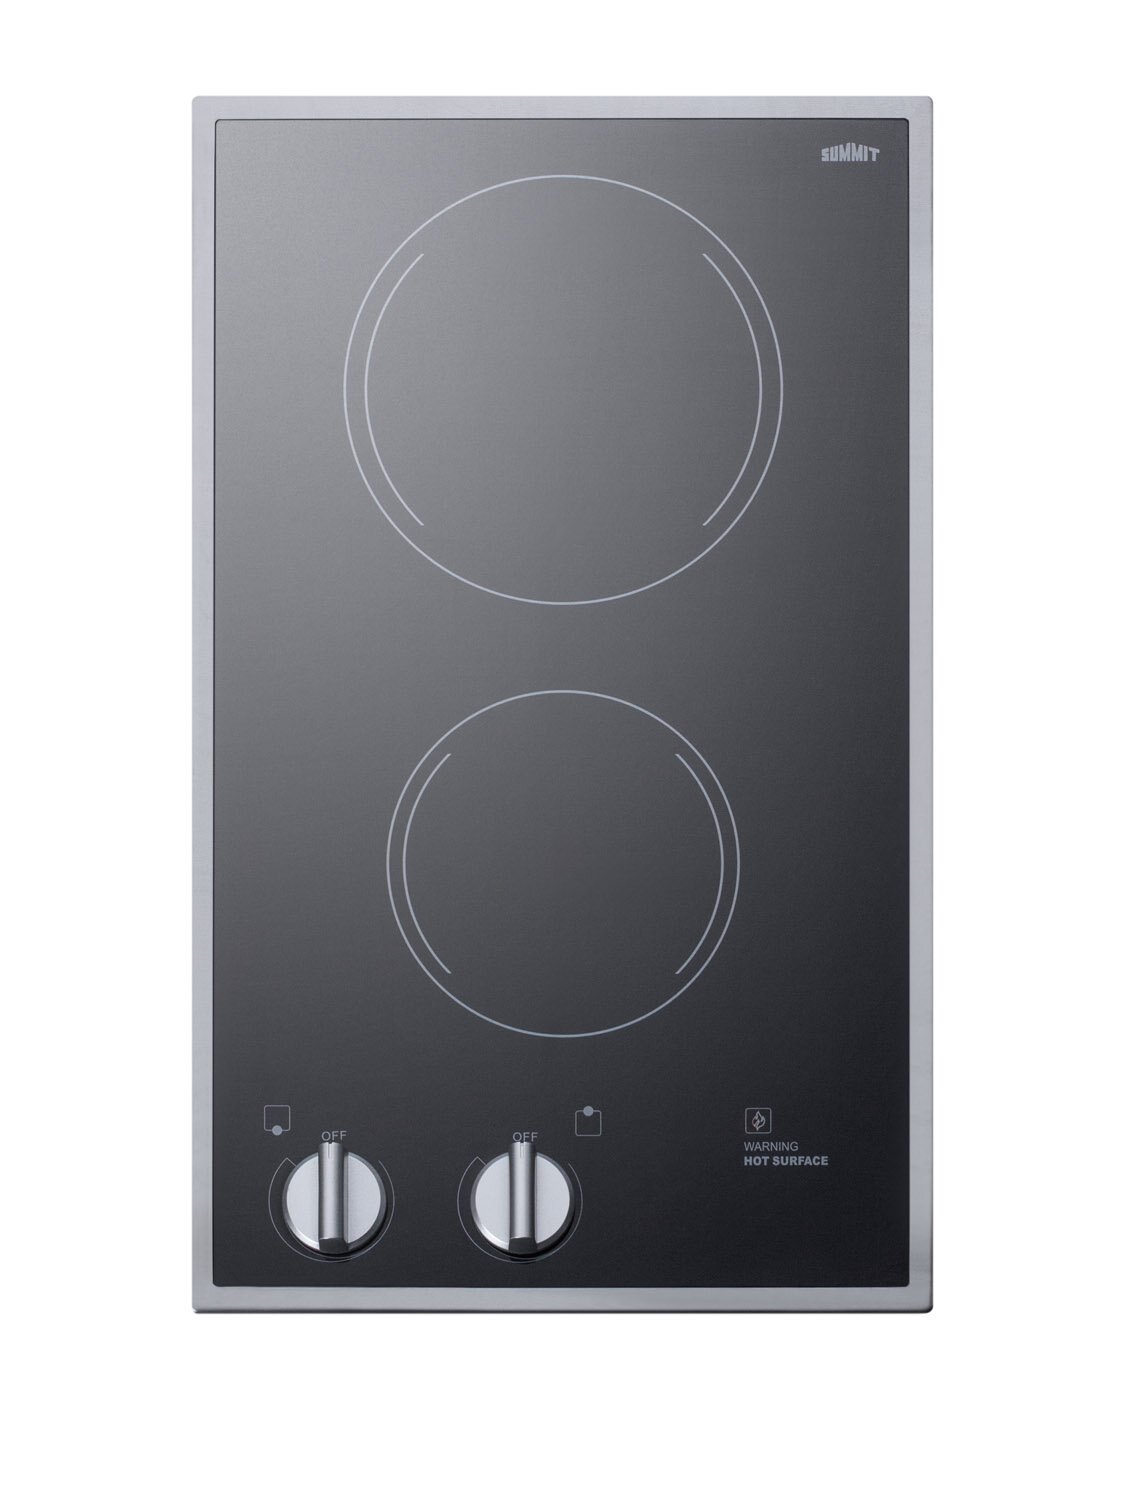 Summit Appliance 12 in Radiant Electric Cooktop in White with 2 Elements including High Power Element